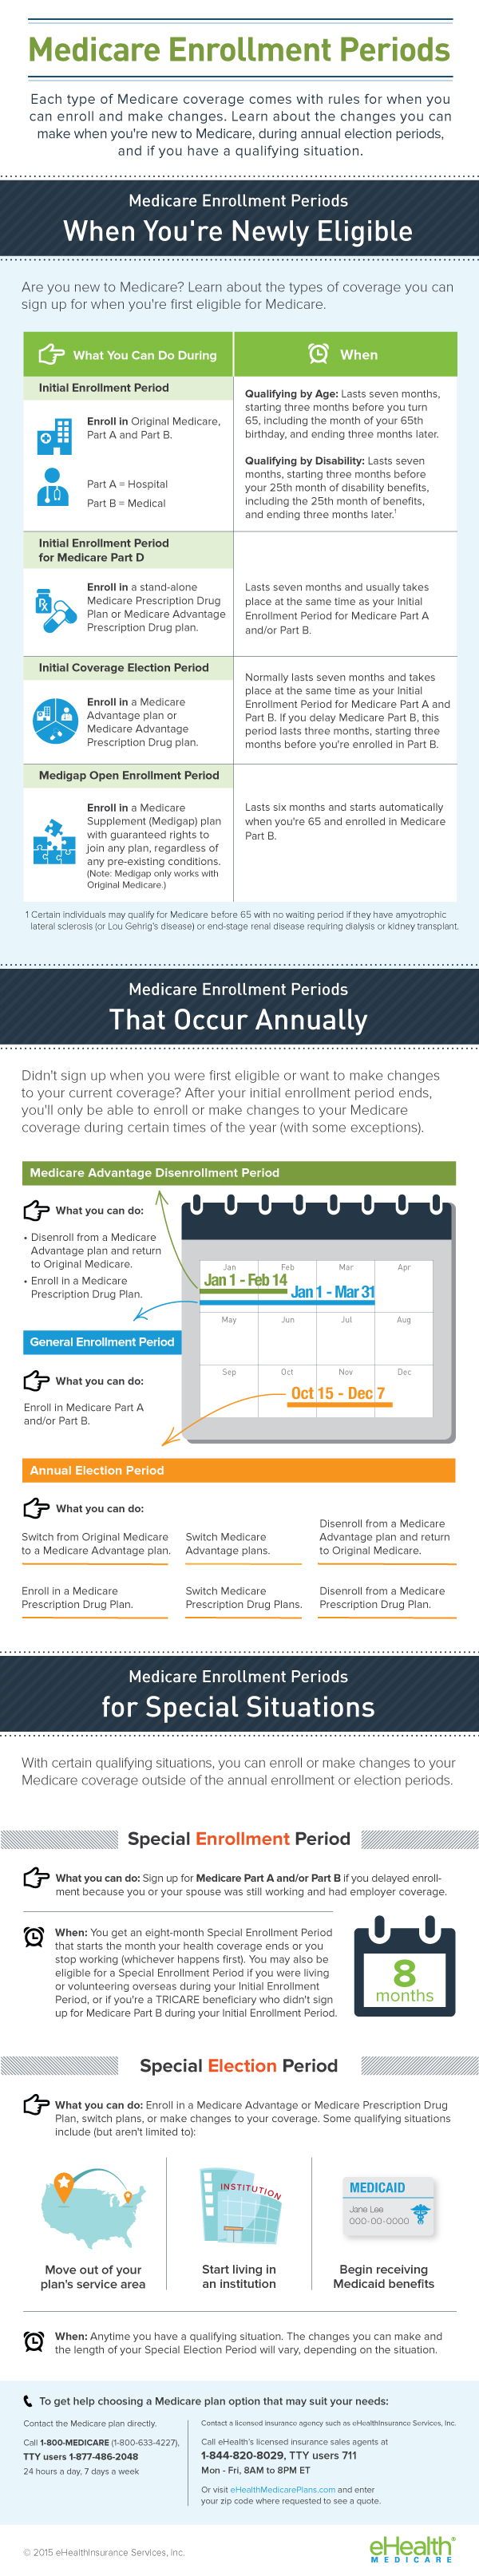 Medicare-enrollment-period-infographic